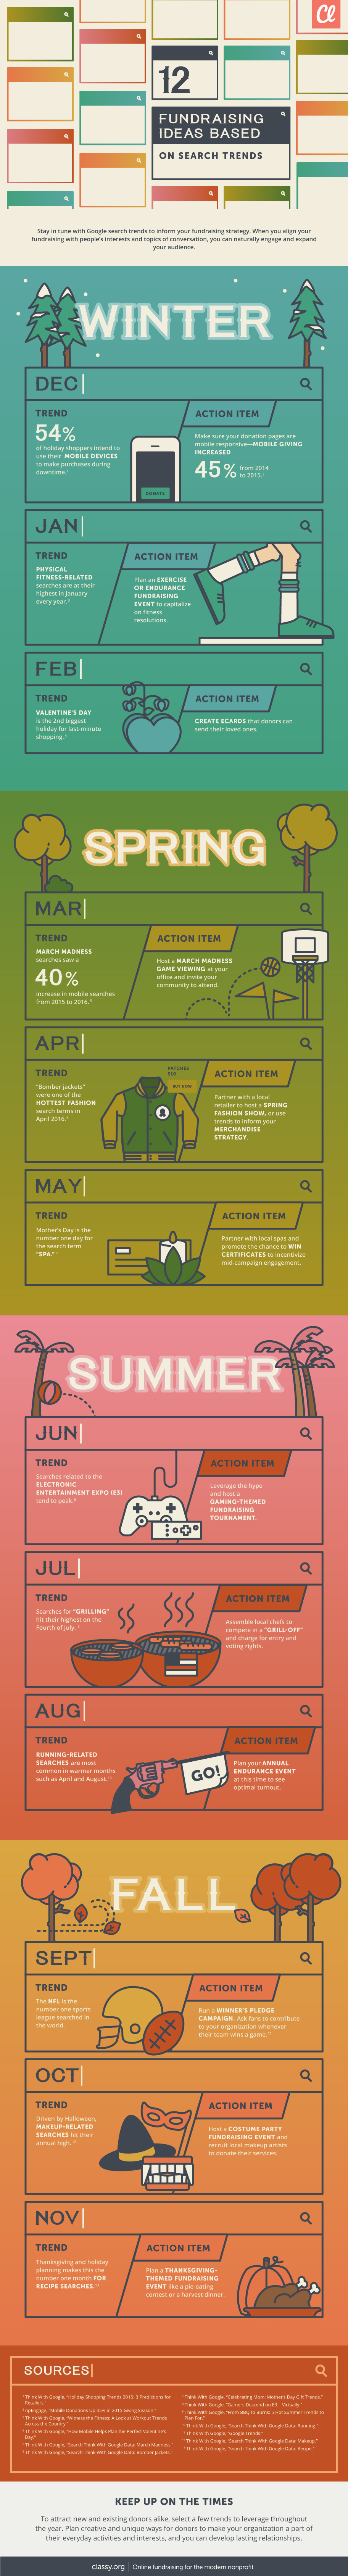 seasonal search trends infographic